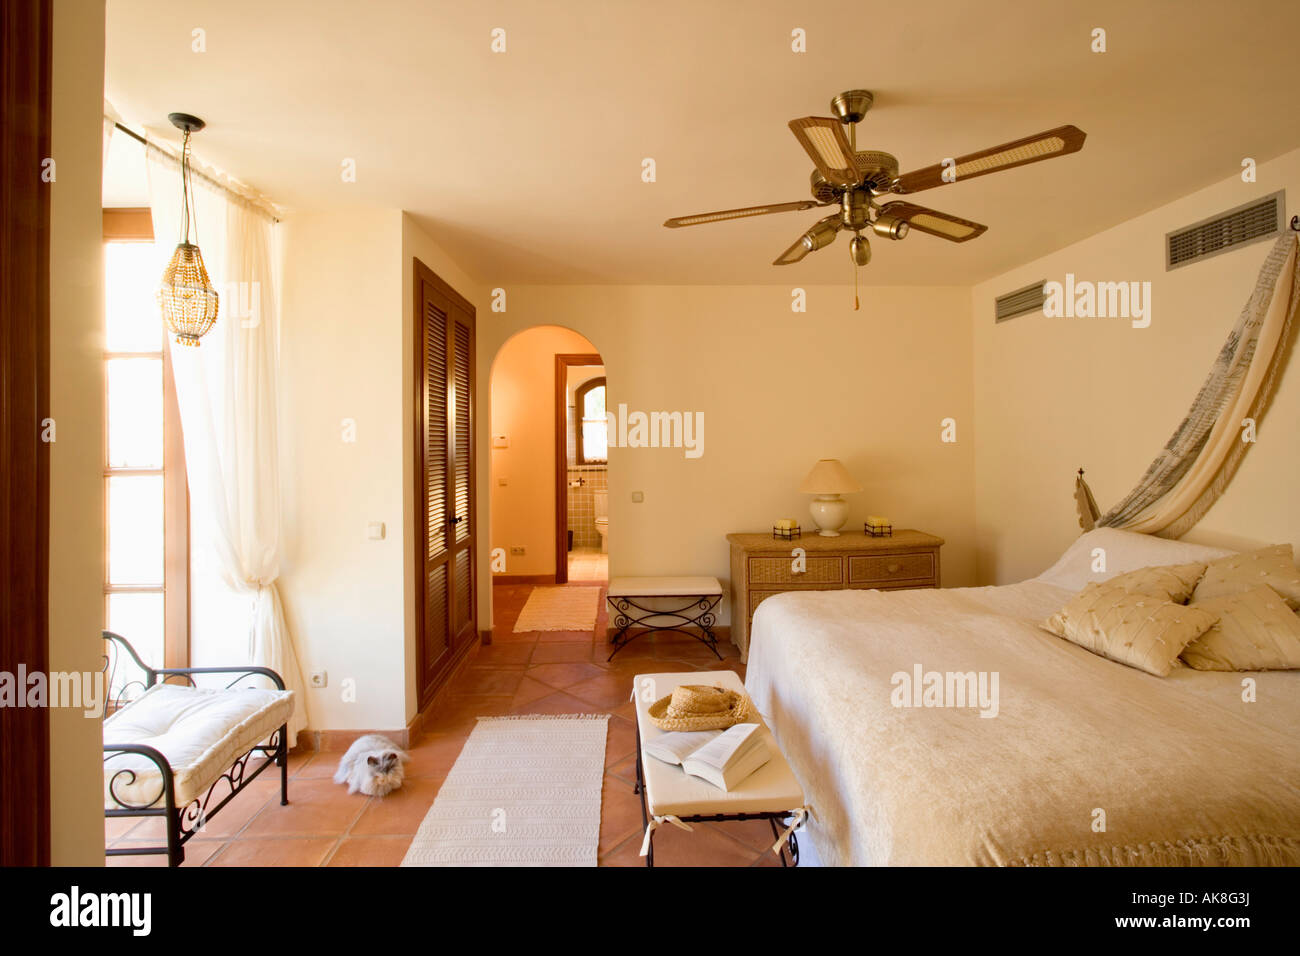 Ceiling Fan Above Bed With Cream Bedcover In Bedroom In Spanish Apartment